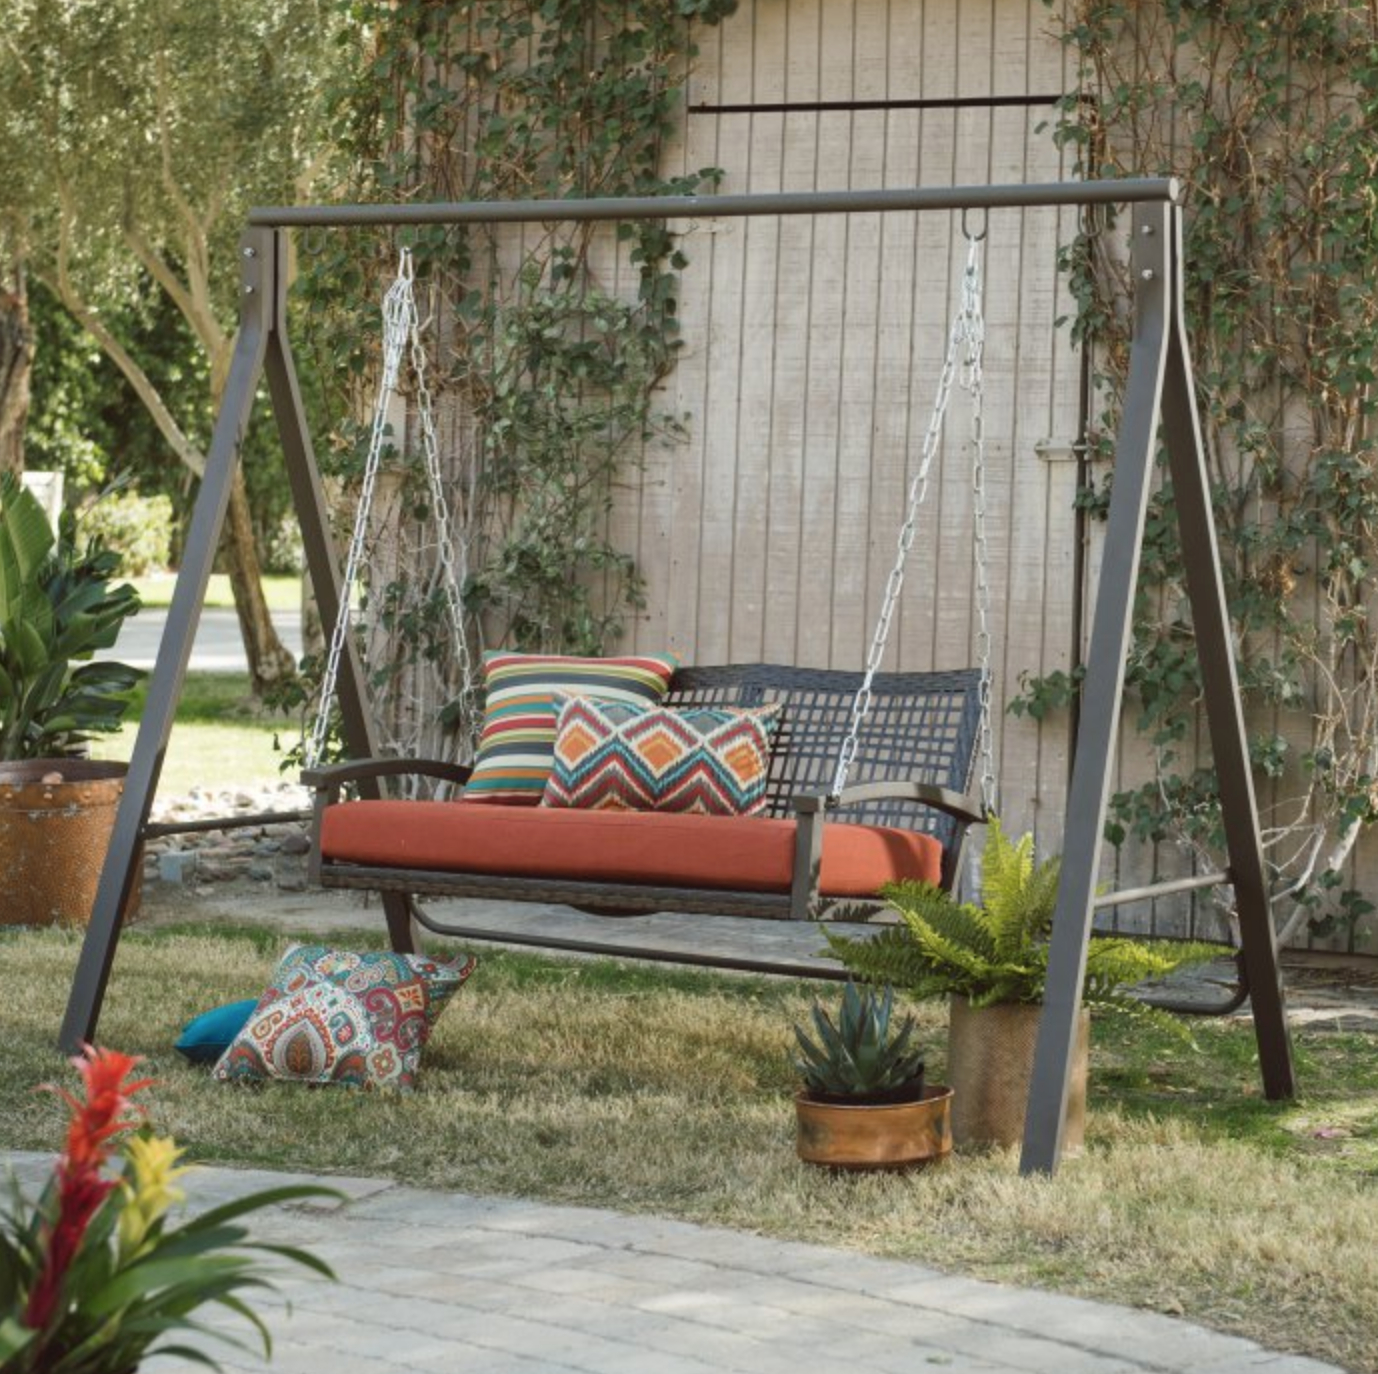 """Patio Metal Swing Stand A Frame Steel For 4"""" 5"""" Swings Lawn Intended For Patio Porch Swings With Stand (View 3 of 25)"""